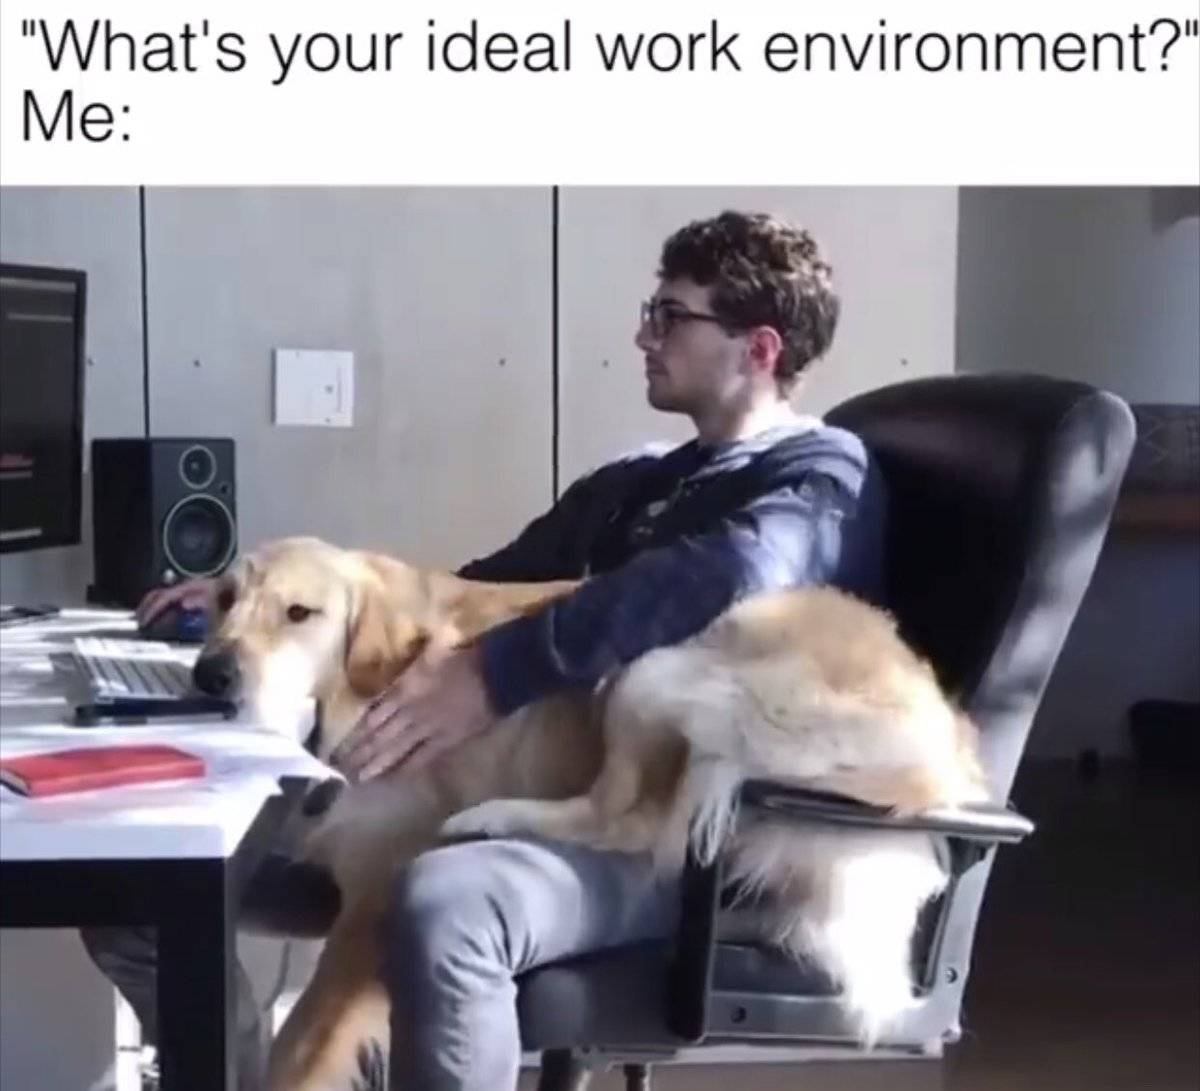 A dog lies on a man's lap while he works at his desk.